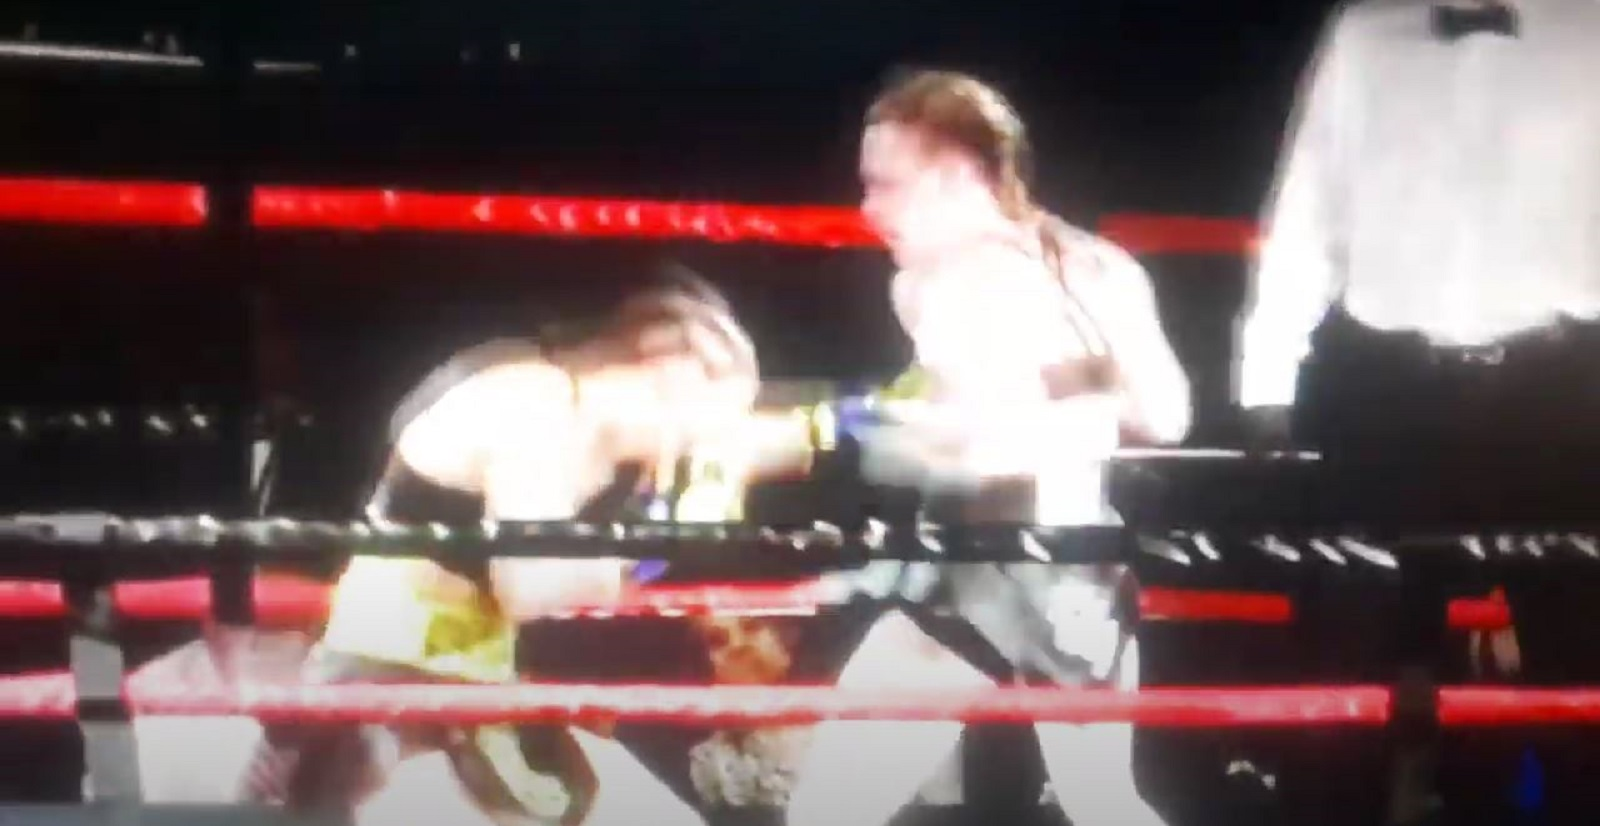 Women's Boxing Fight In Tennessee Shocks